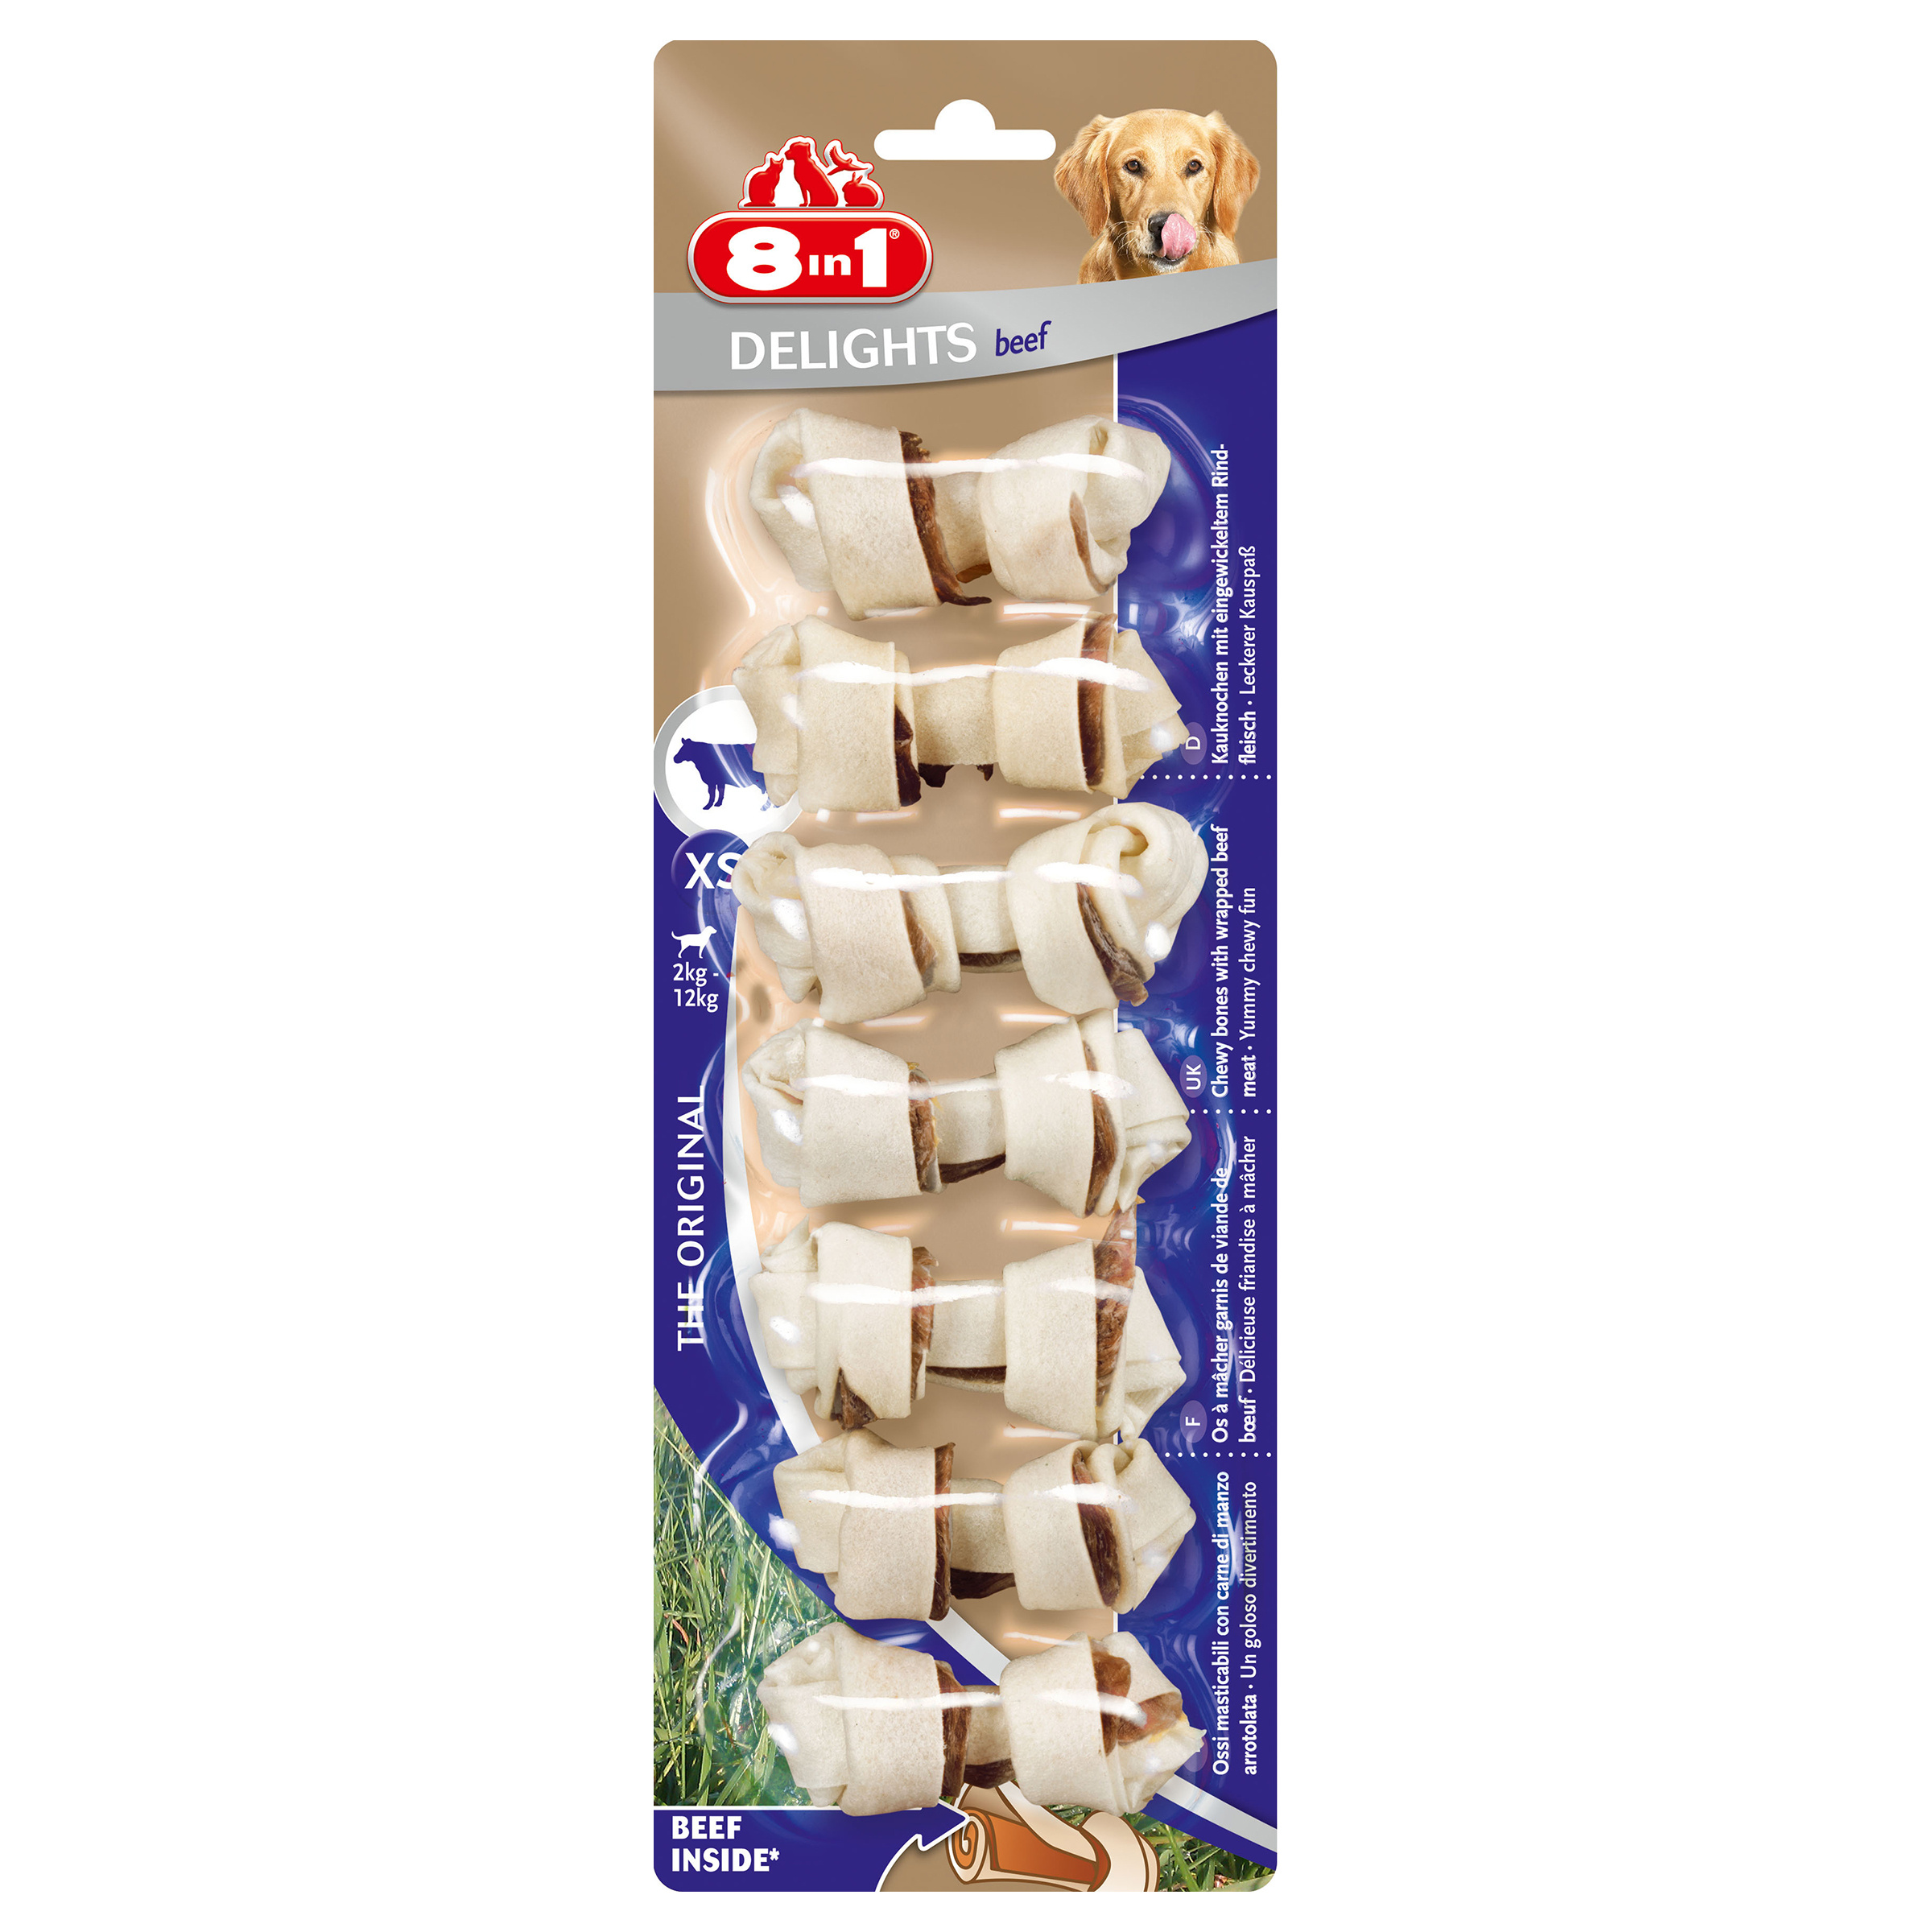 Image of 8in1 Delights Beef XS 7 Stück 80g